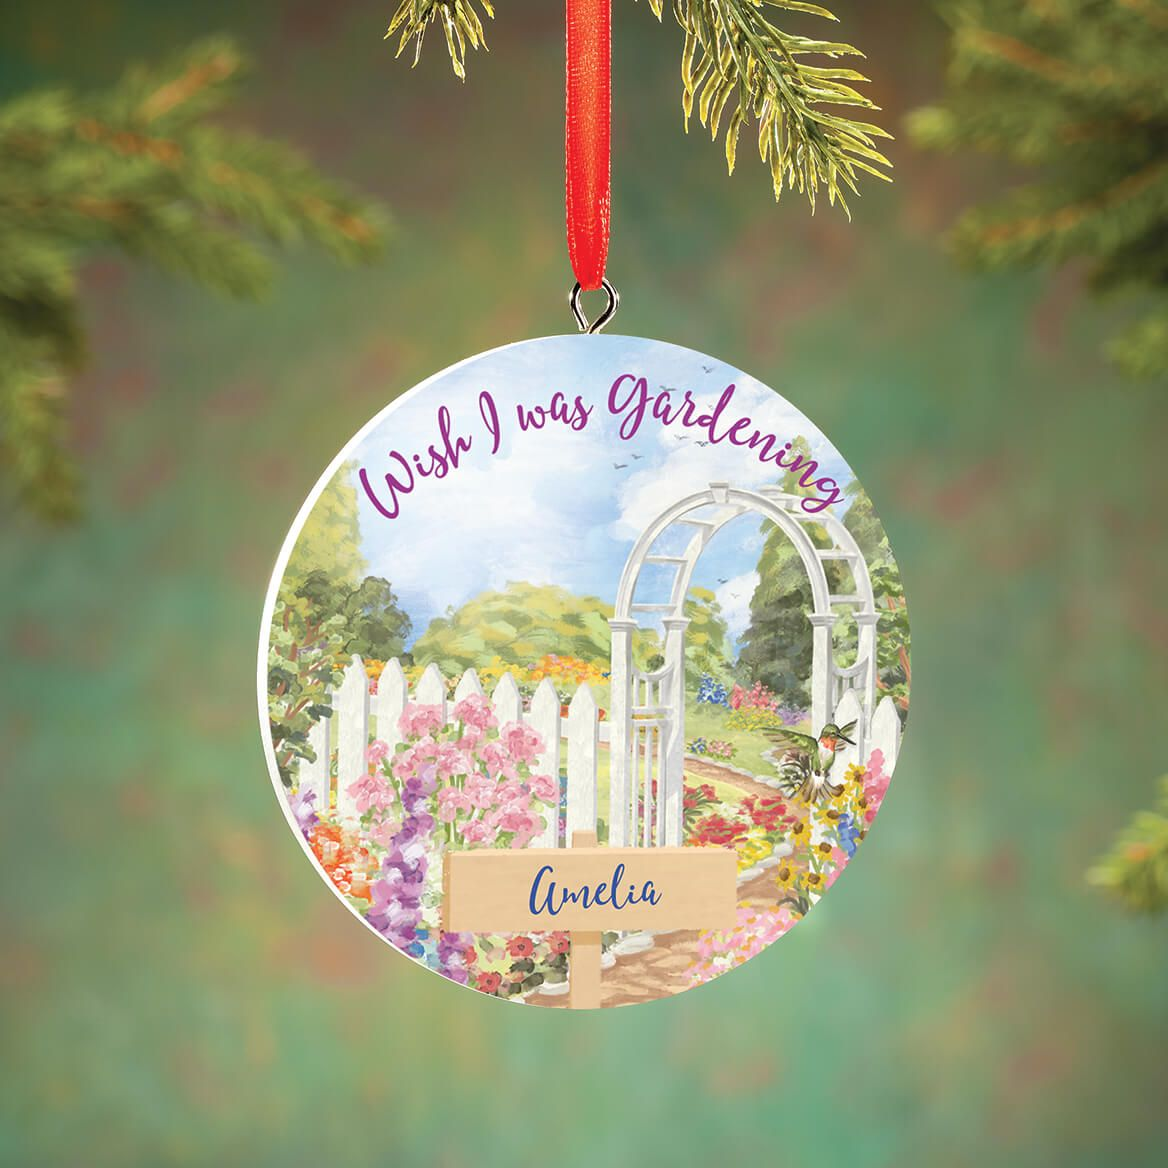 Personalized Gardening Ornament-372812